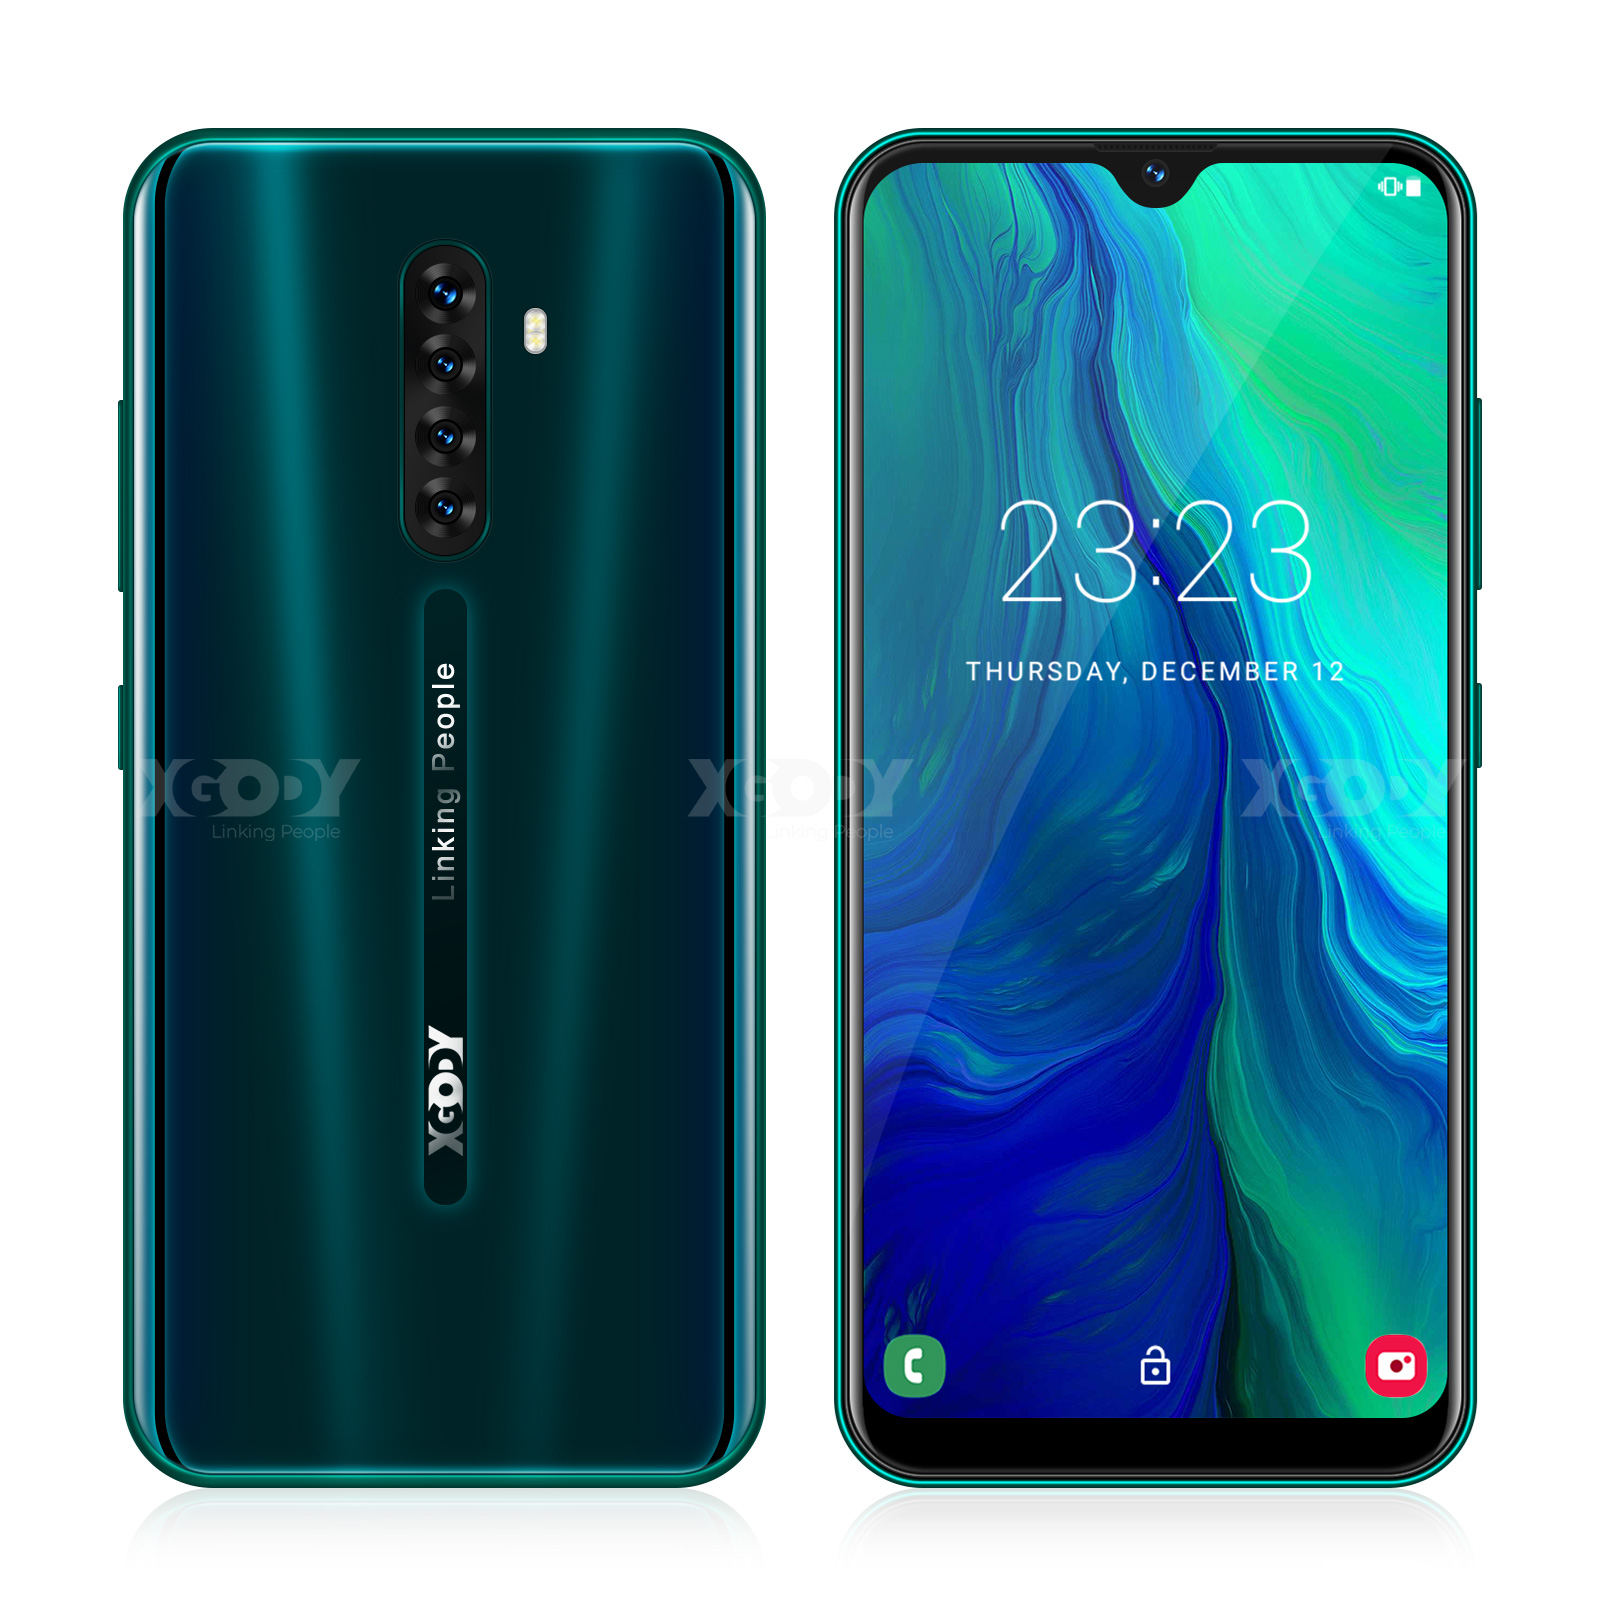 XGODY Note8 4G Smartphone Android 9.0 6.26inch Waterdrop Screen 2GB 16GB MTK6737 Quad Core 8MP Camera 2850mAh Mobile Phone